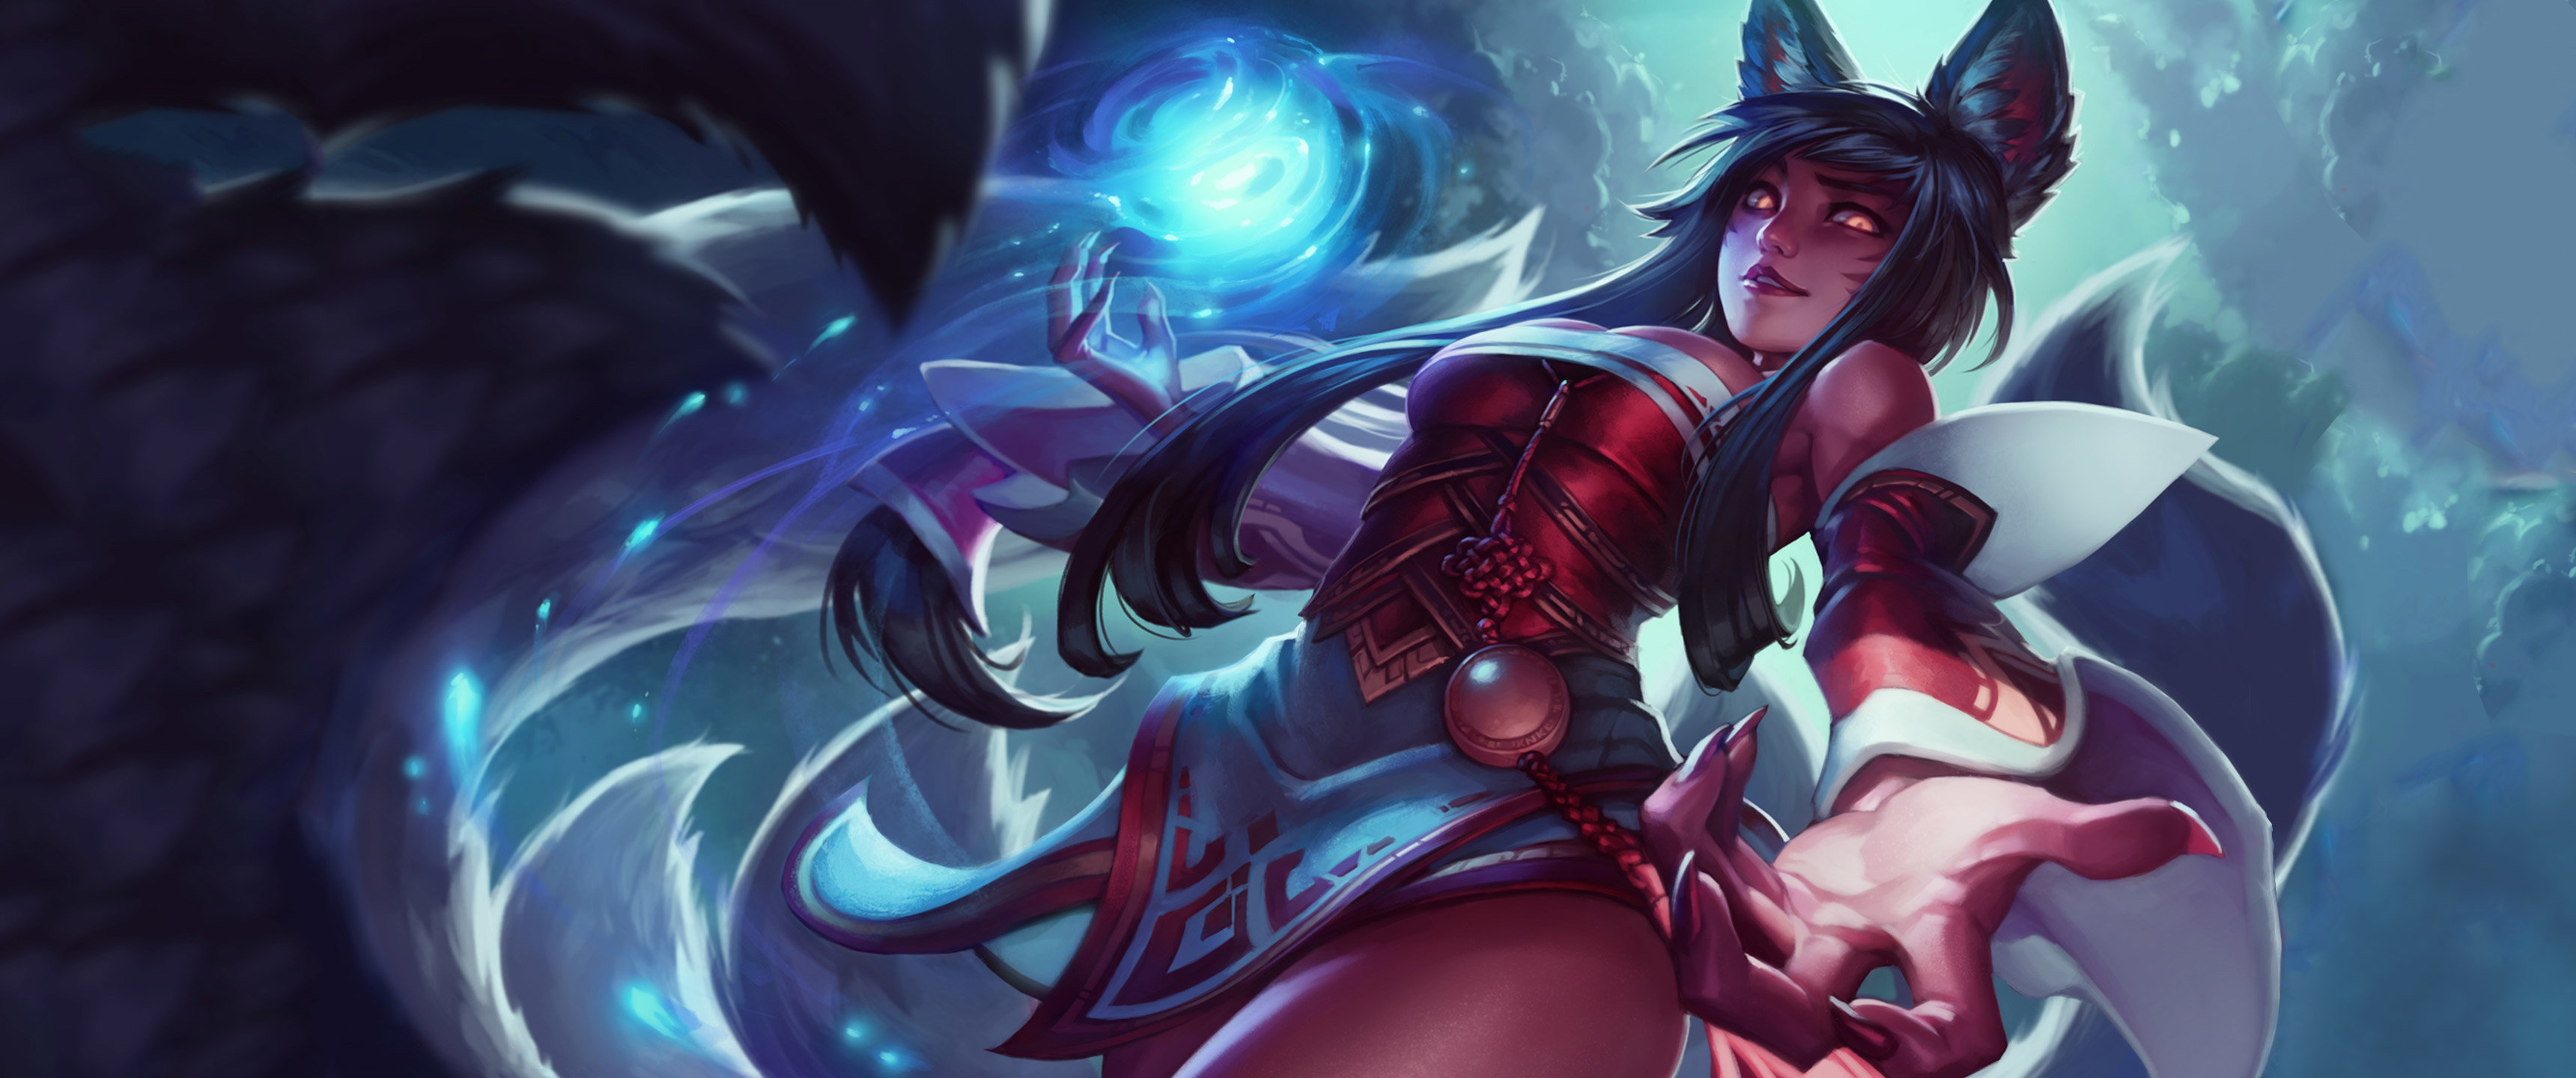 High resolution Ahri (League Of Legends) hd 3440x1440 background ID:171230 for PC